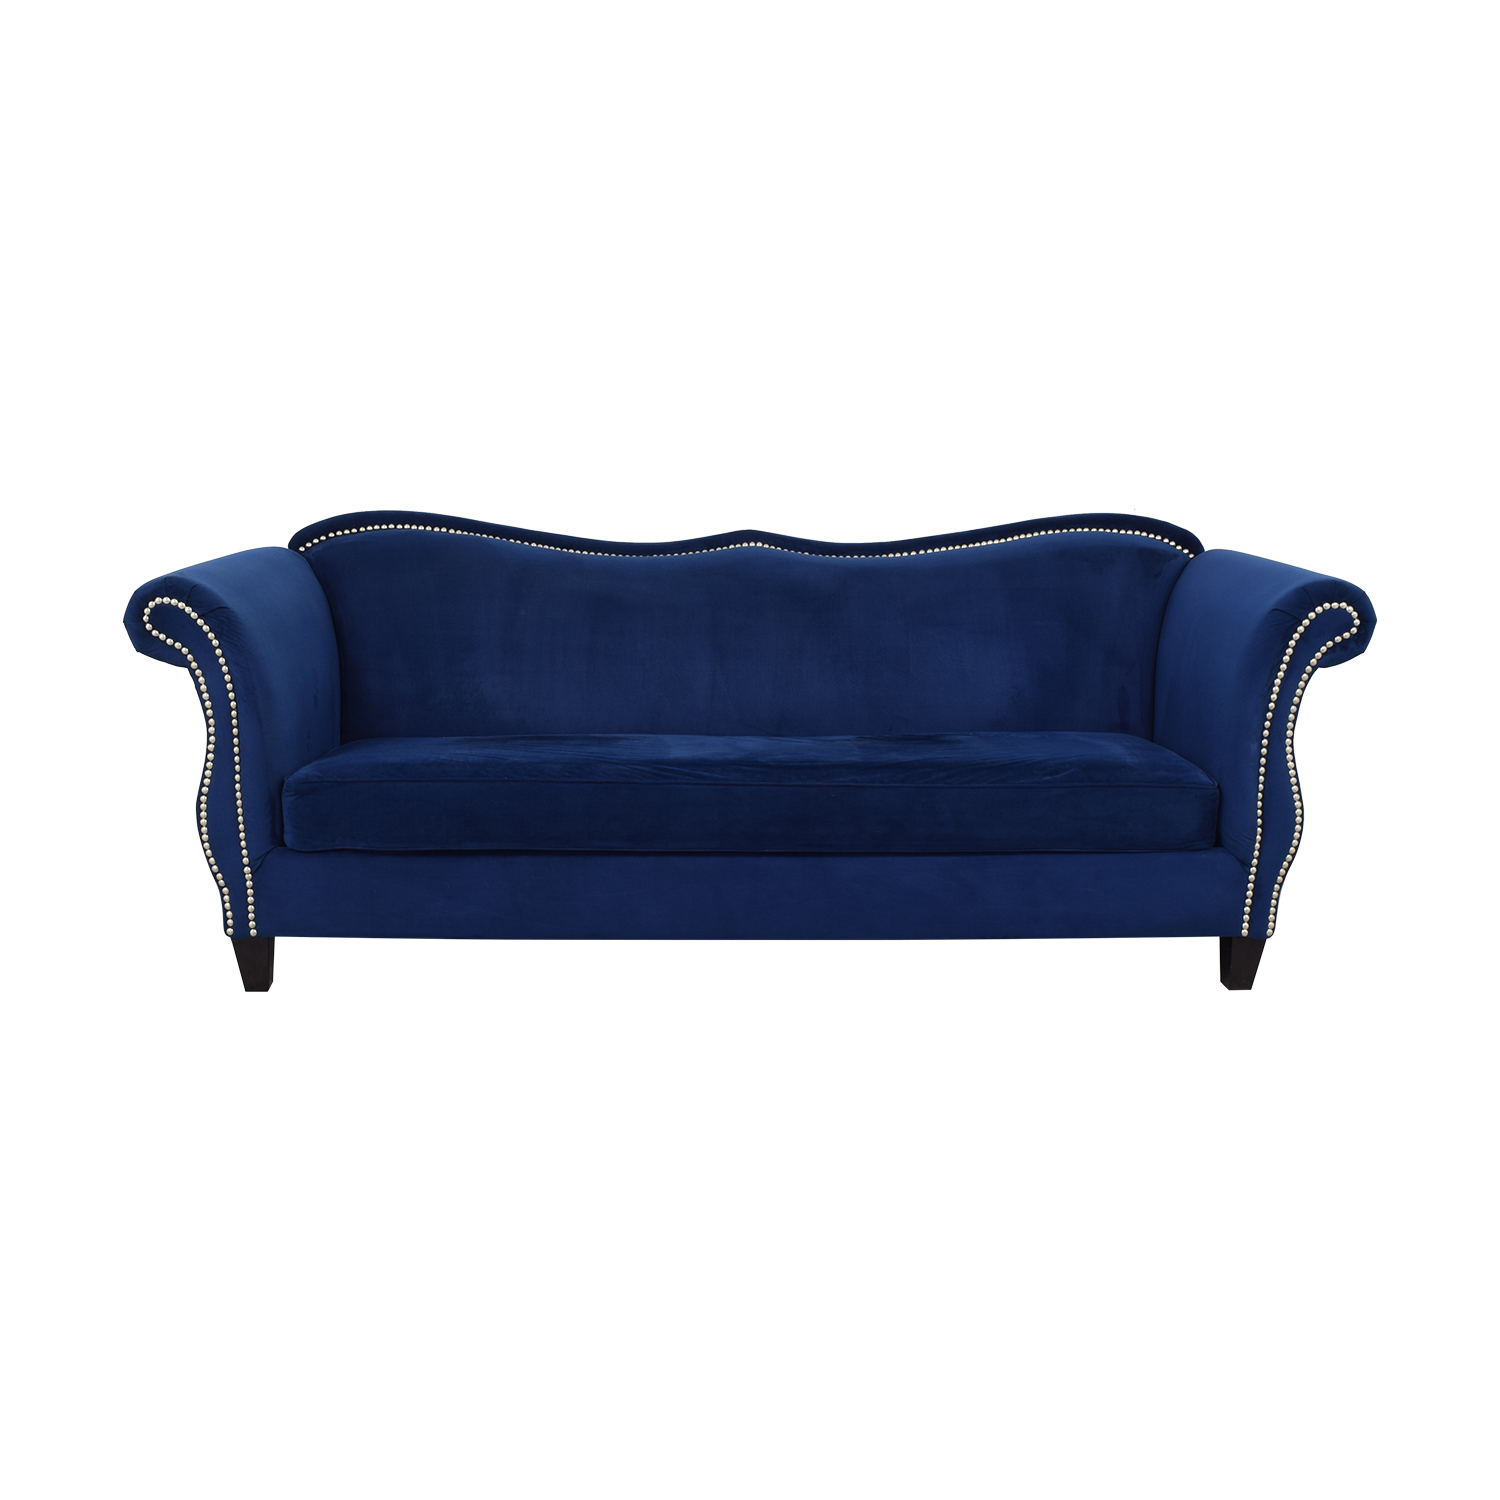 Furniture of America Tufted Sofa sale